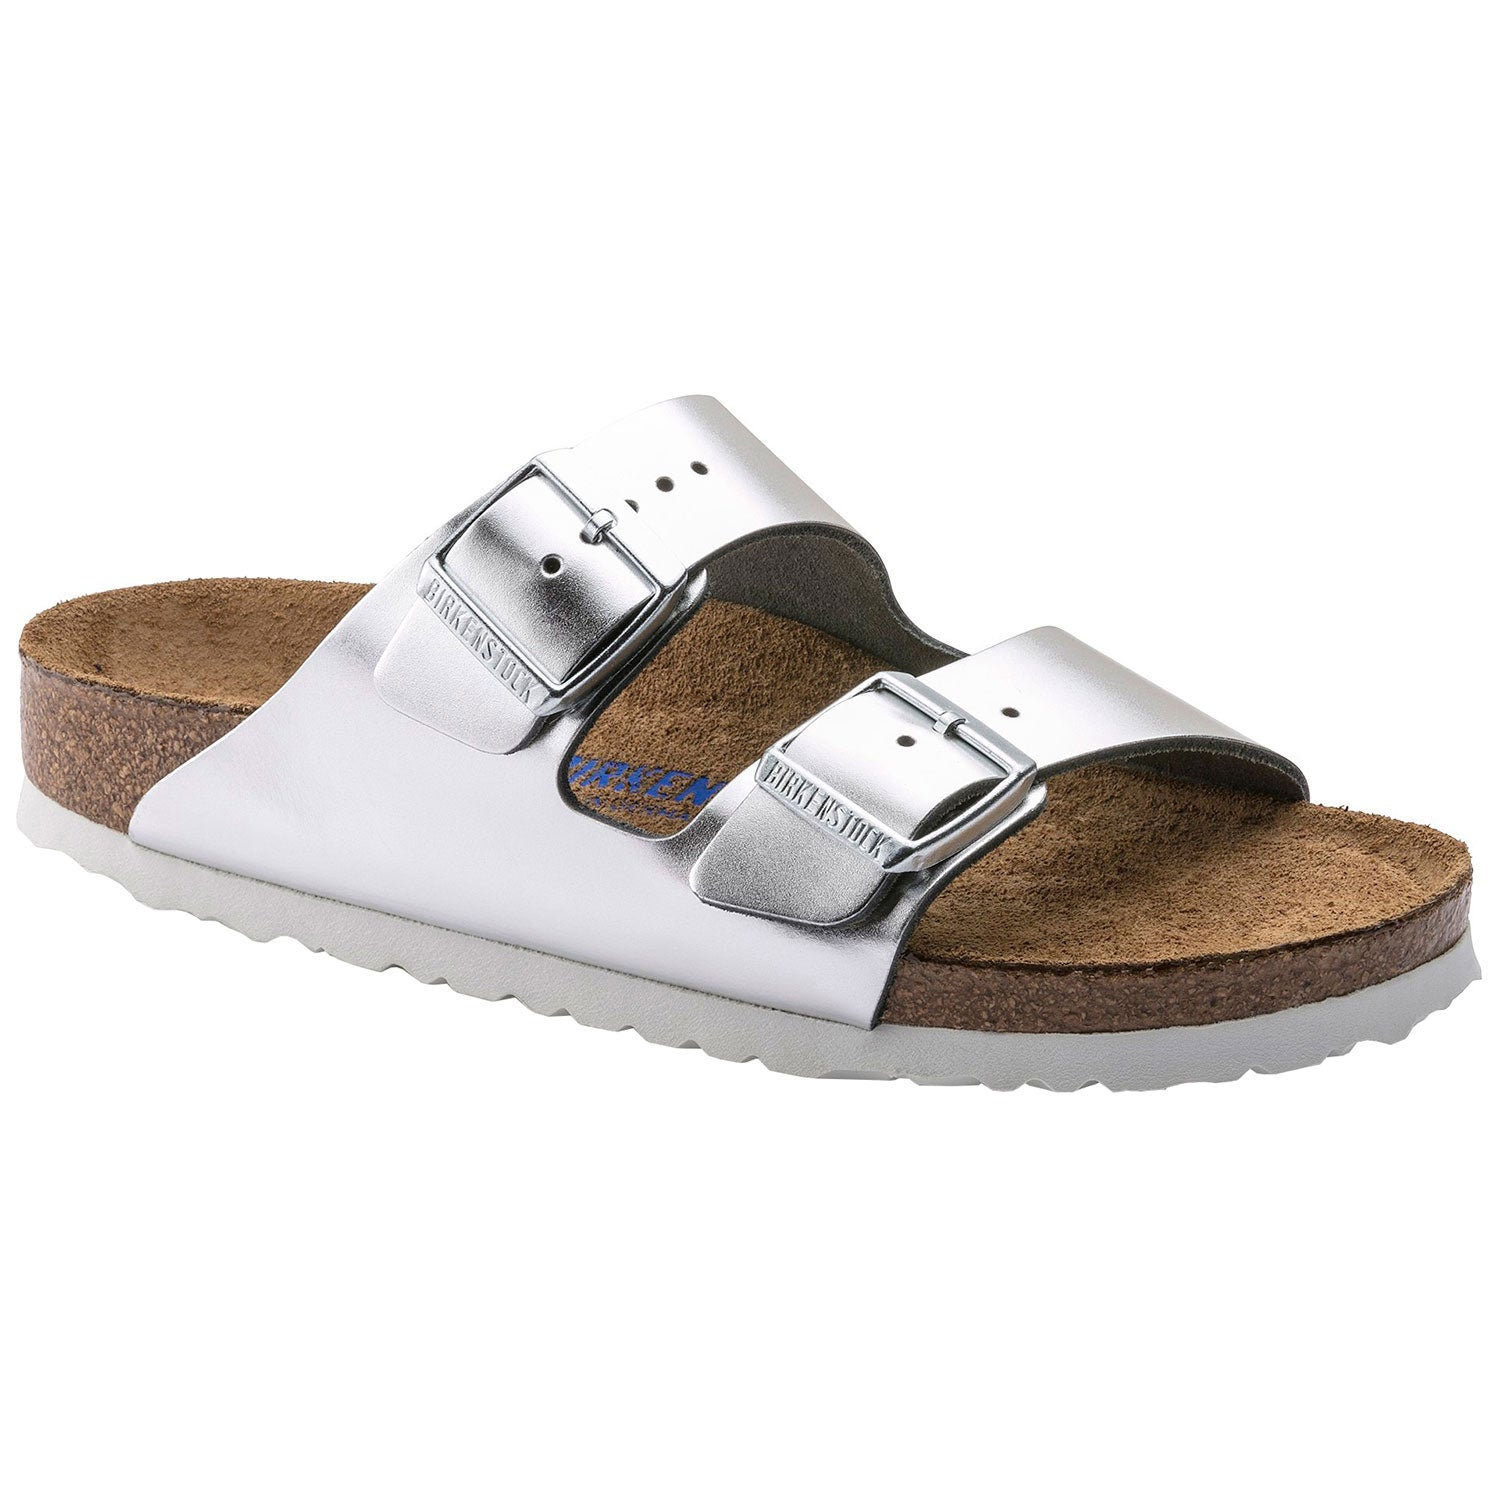 Birkenstock Arizona Leather Soft Footbed Narrow Sandals available from Blackleaf